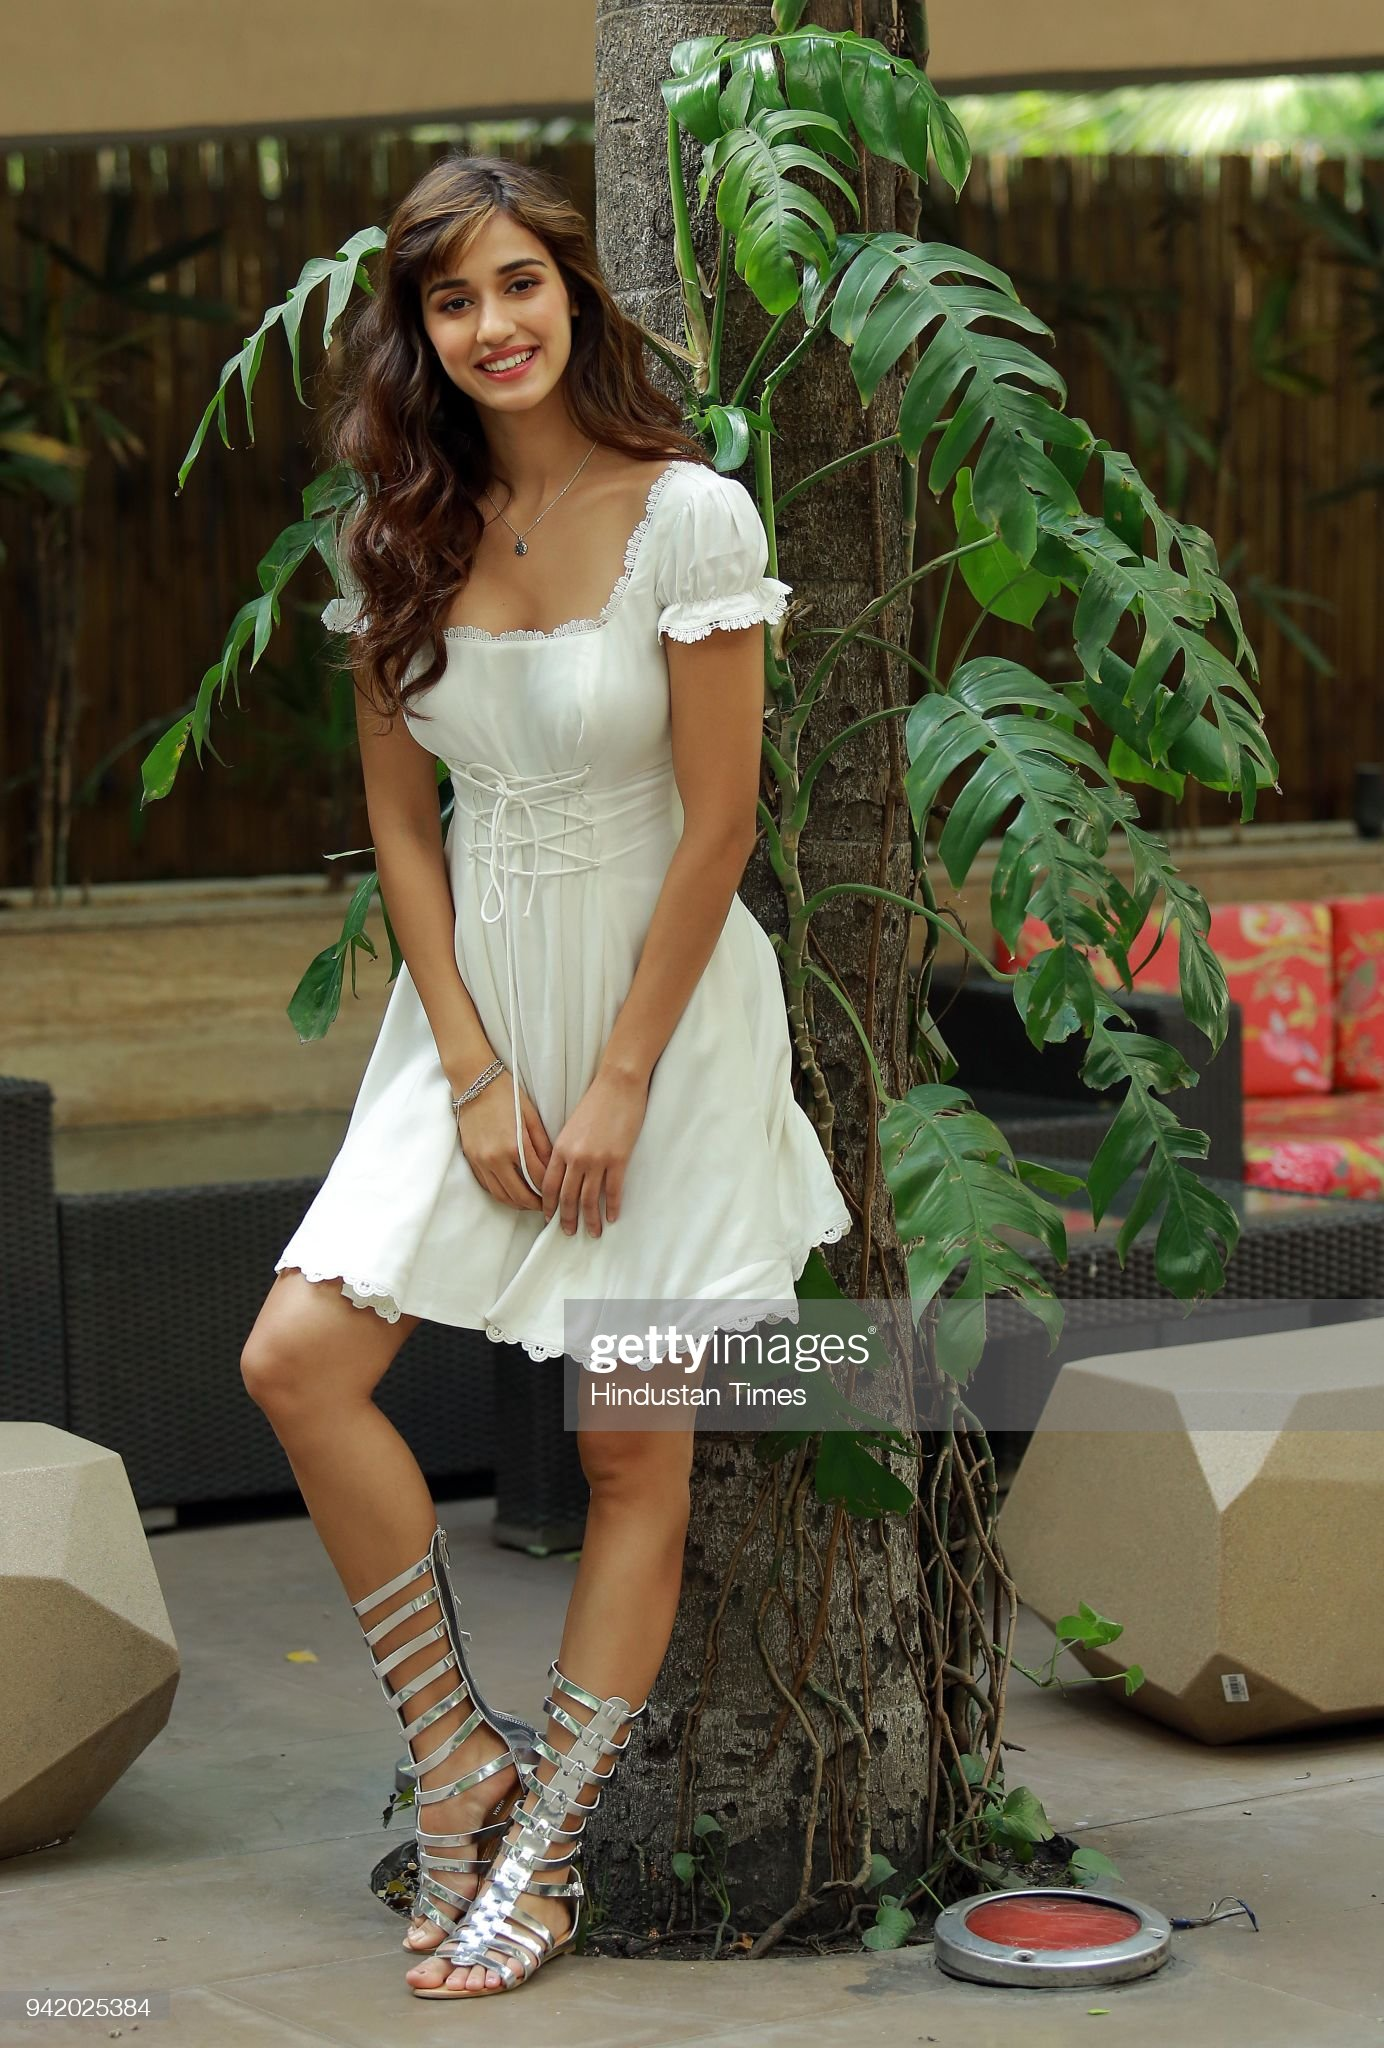 bollywood-actress-disha-patani-during-promotion-of-her-upcoming-movie-picture-id942025384